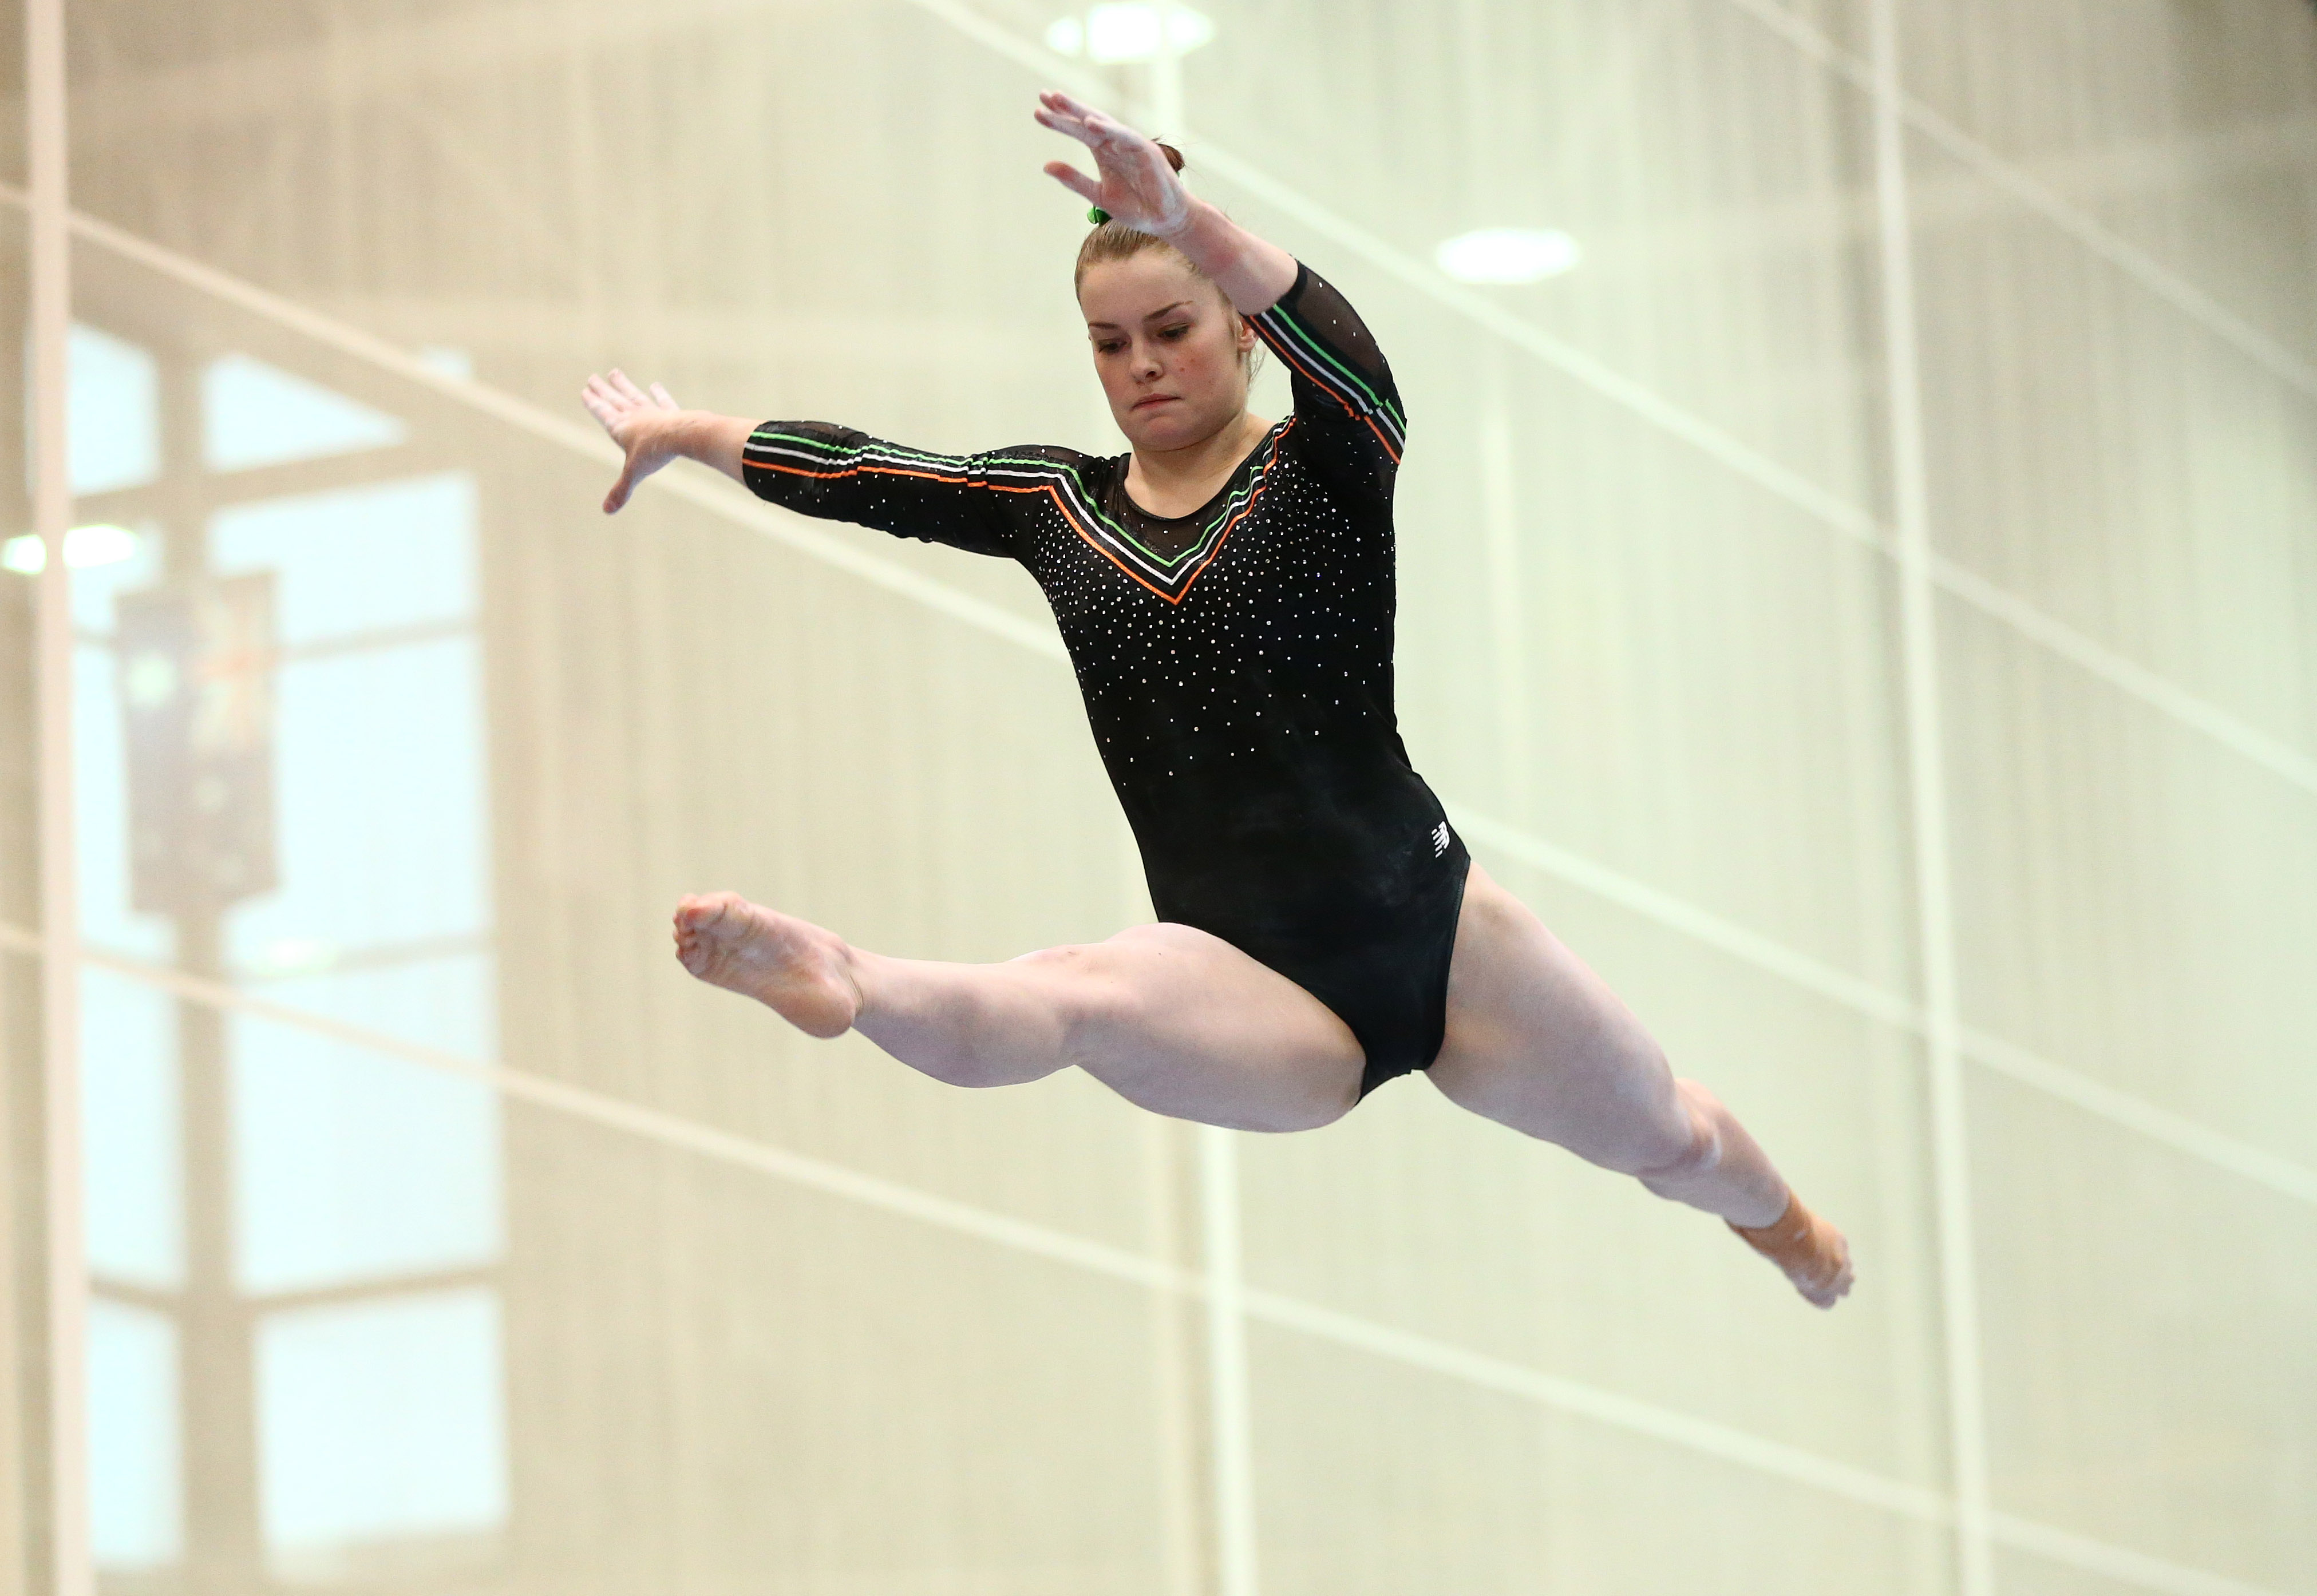 The Northern European Gymnastics Championships, University of Limerick Sports Arena, Limerick 19/9/2015 Ireland's Nicole Mawhinney on the beam exercise  Mandatory Credit ©INPHO/Cathal Noonan